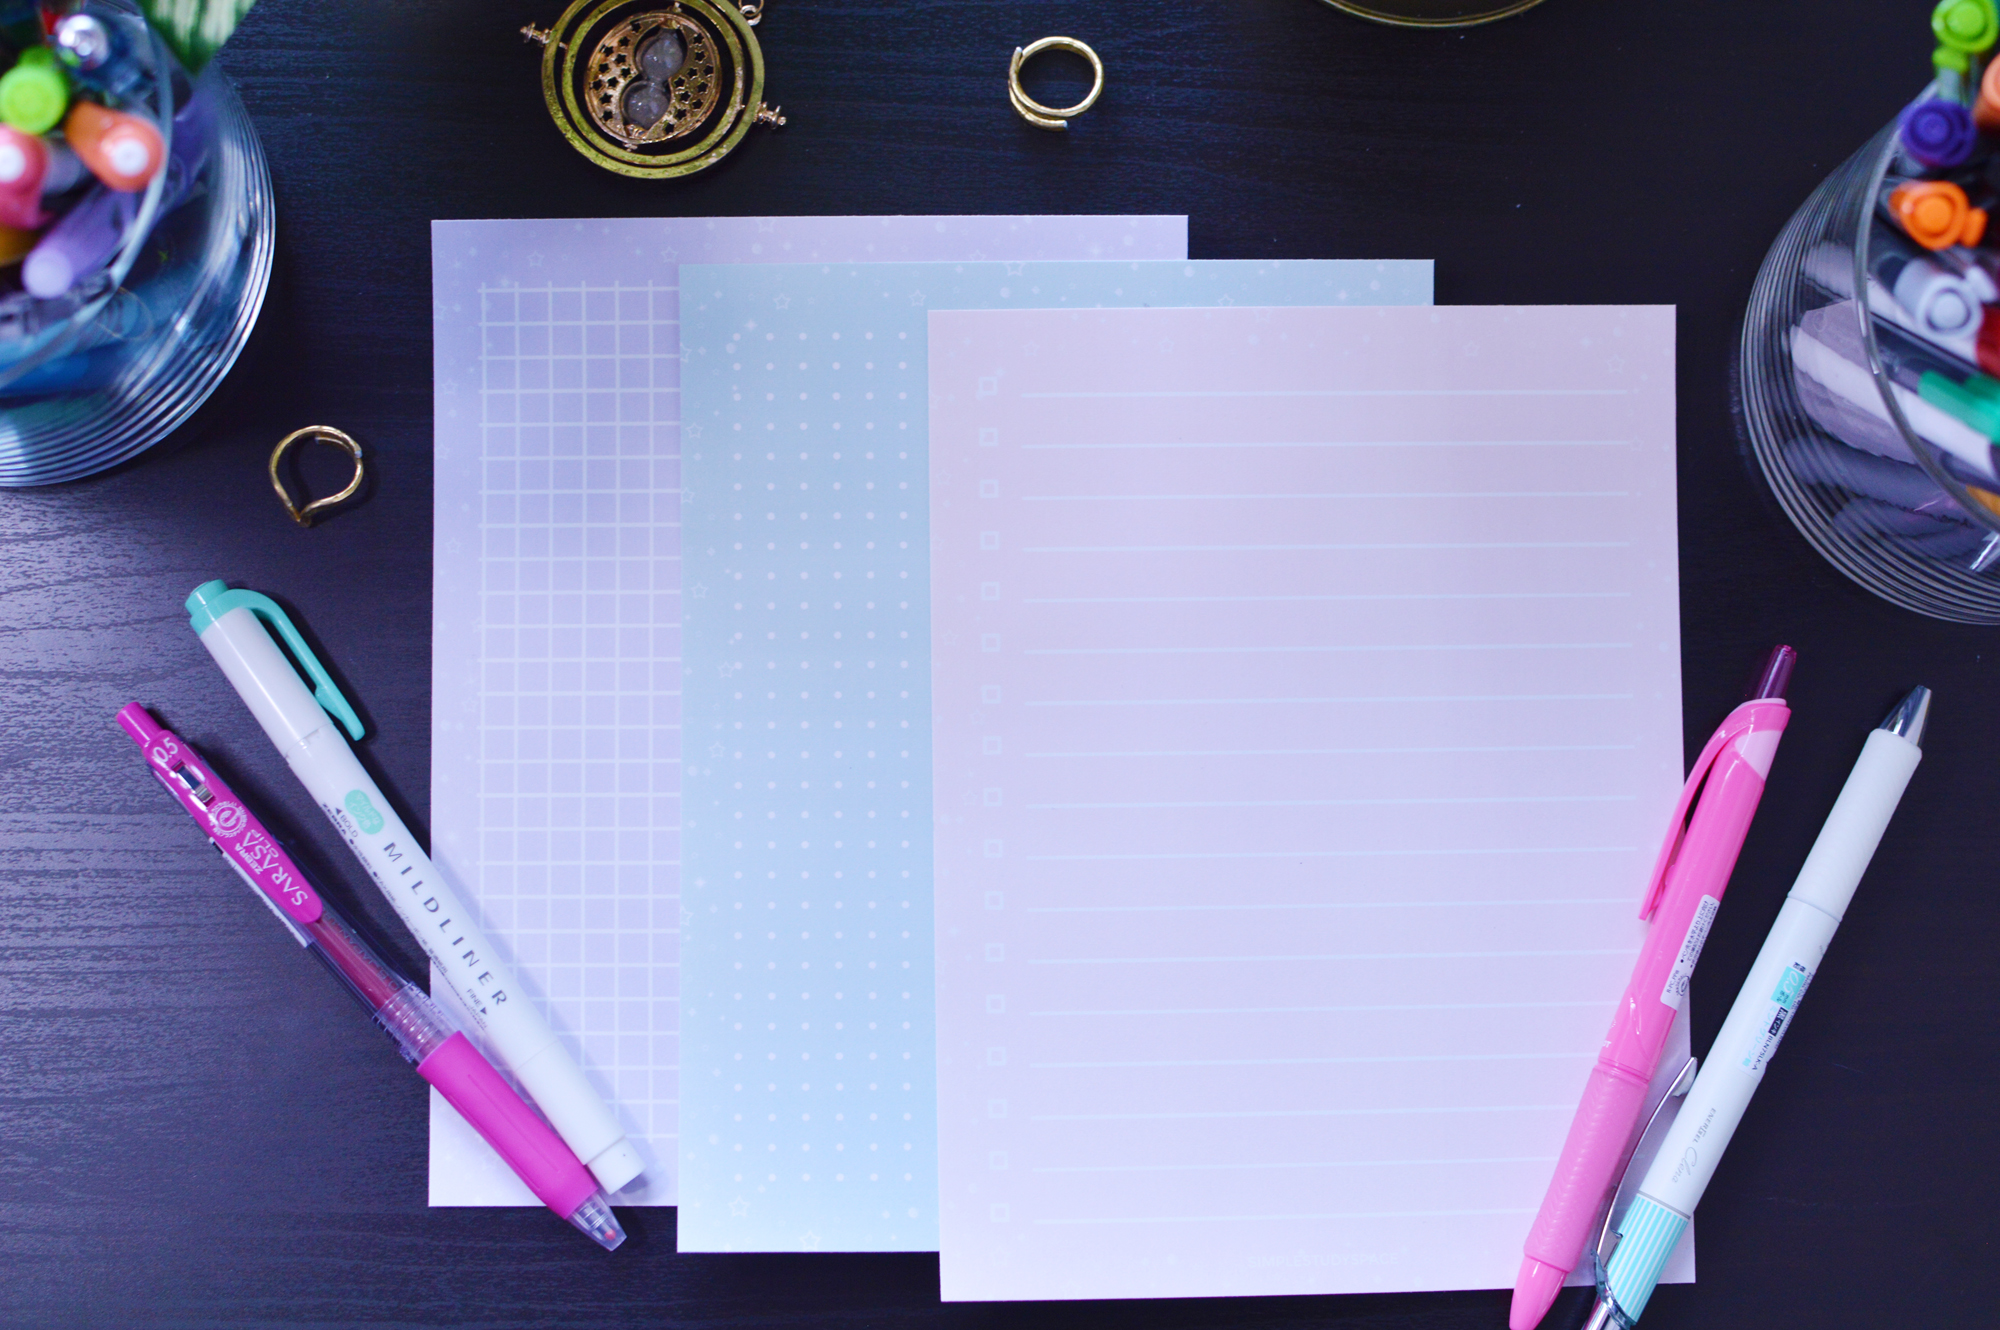 Lined Grid, Dotted Grid and Checklist formats shown. This post is for the top checklist format.